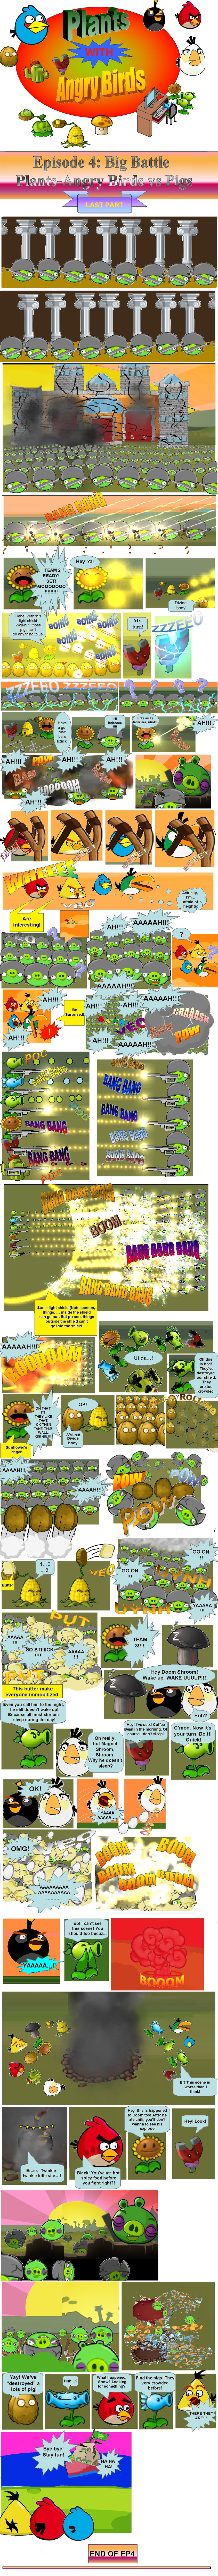 Plants and Angry birds part 4 Last